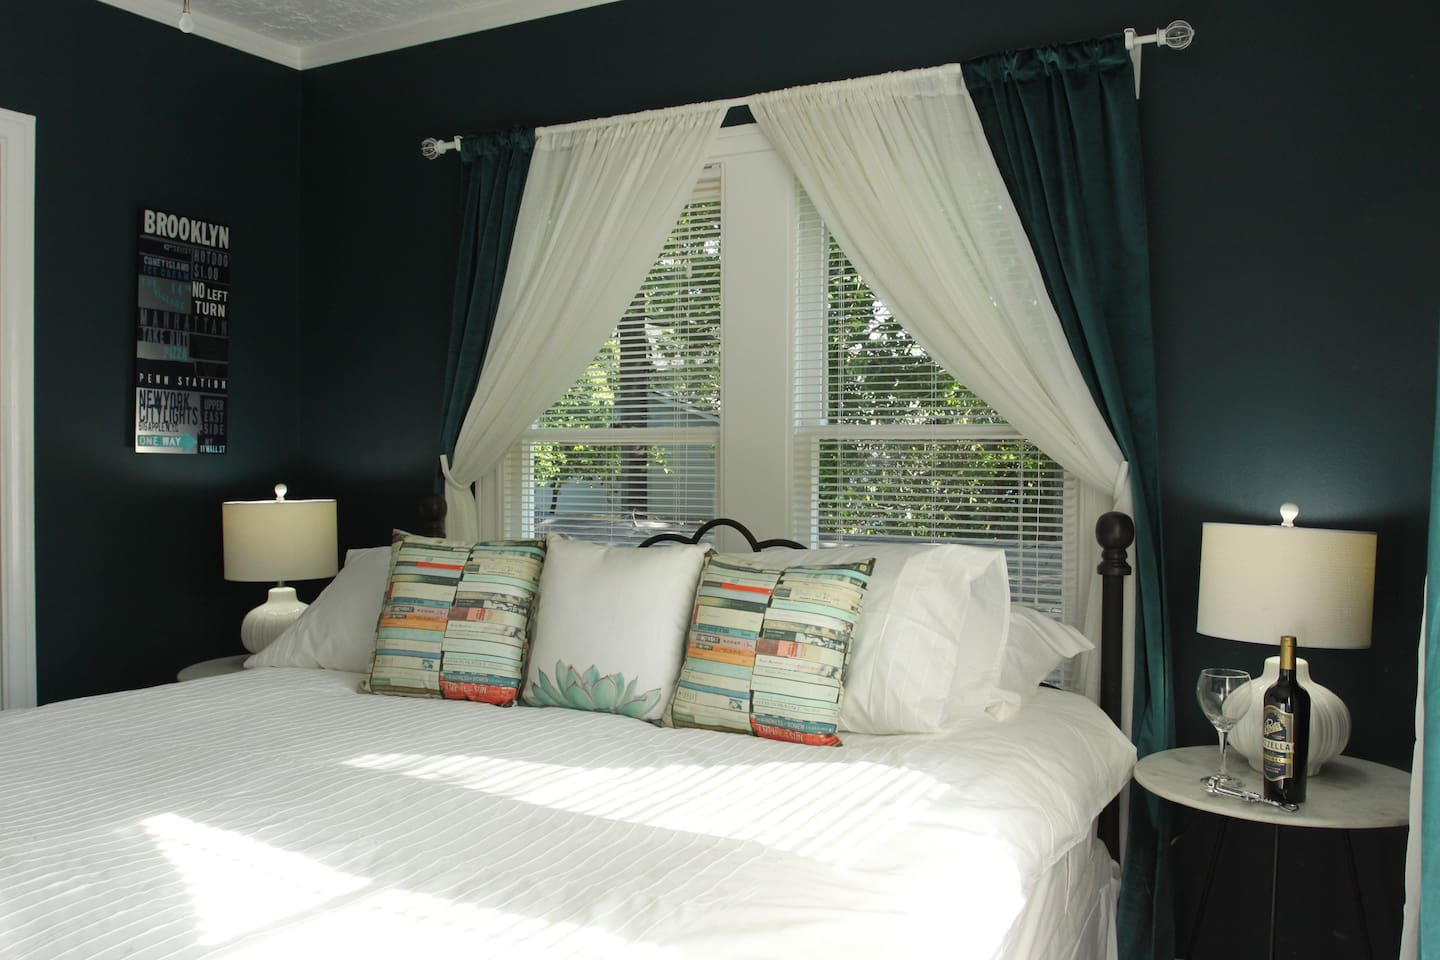 1 - Ahhhhh.....this king sized bed will make you want to stay in bed all day...but no...you must get up experience The Heights!